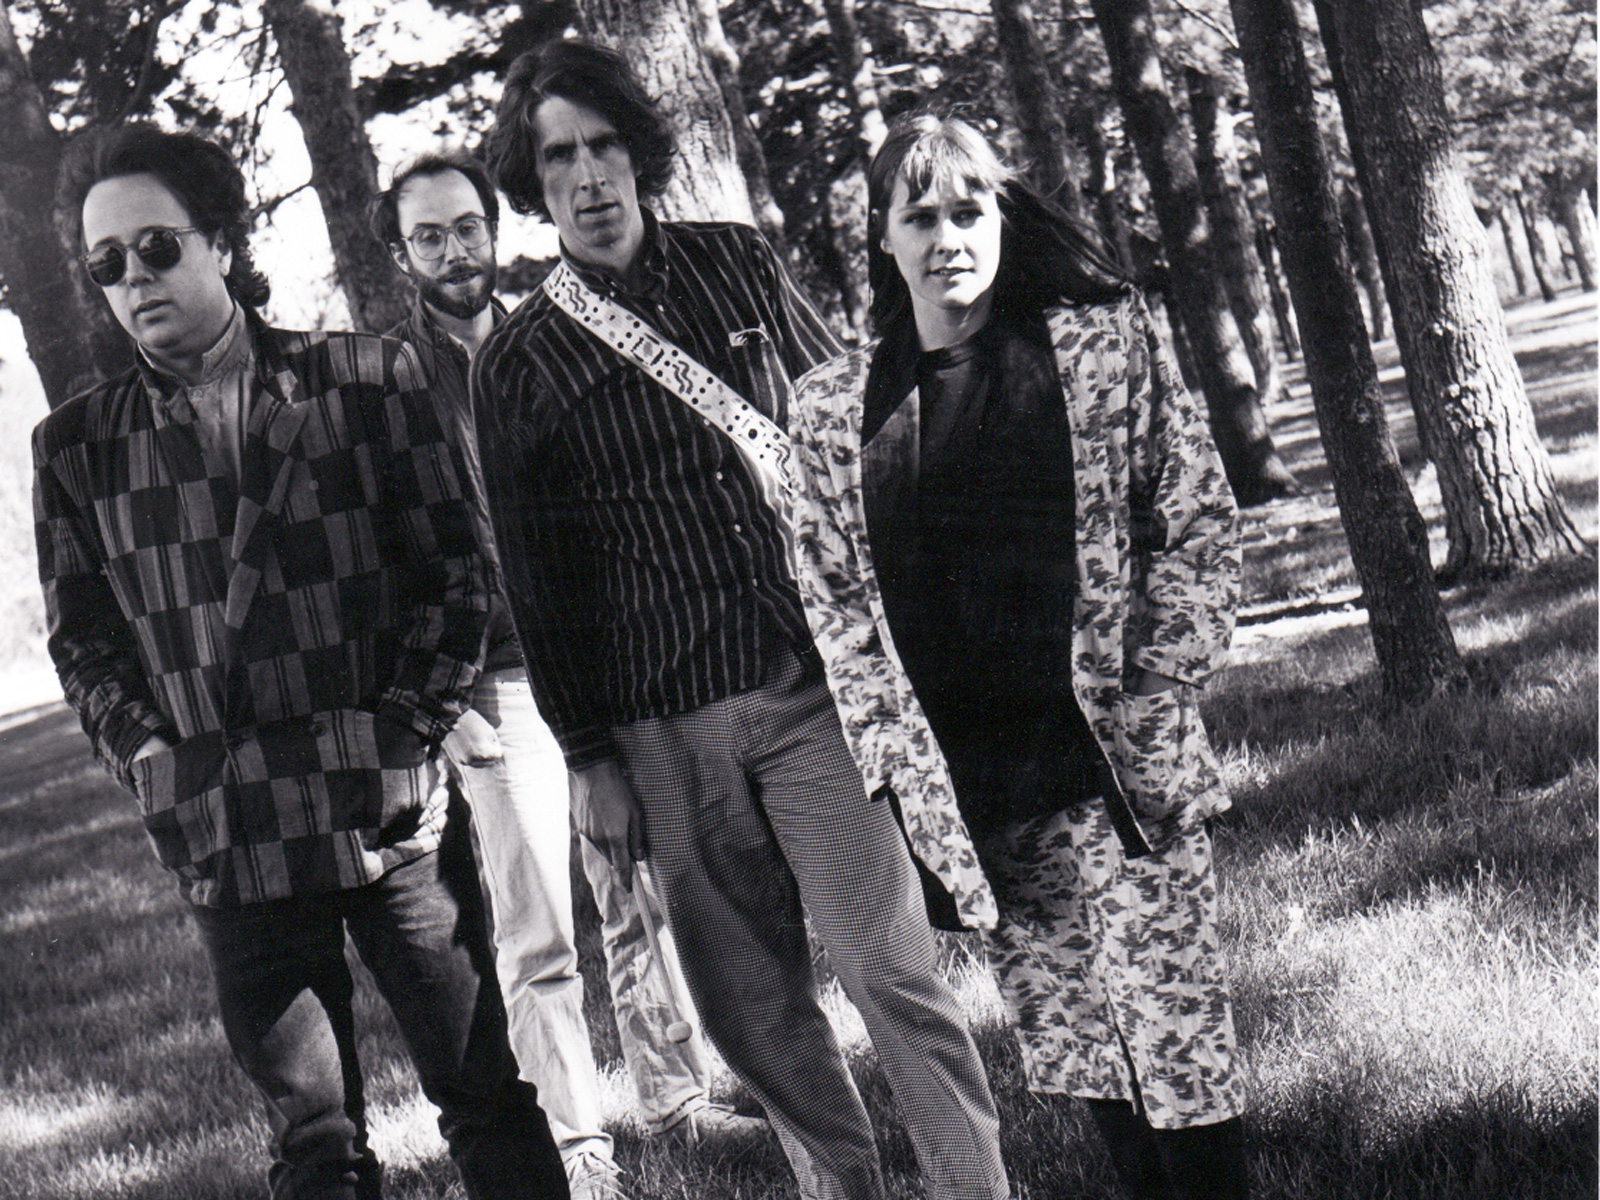 Promo photo for Personal Effects 3 month gig at Planetarium in Rochester, New York 1987. Bob Martin, Martin Edic, Paul Dodd and Peggi Fournier.